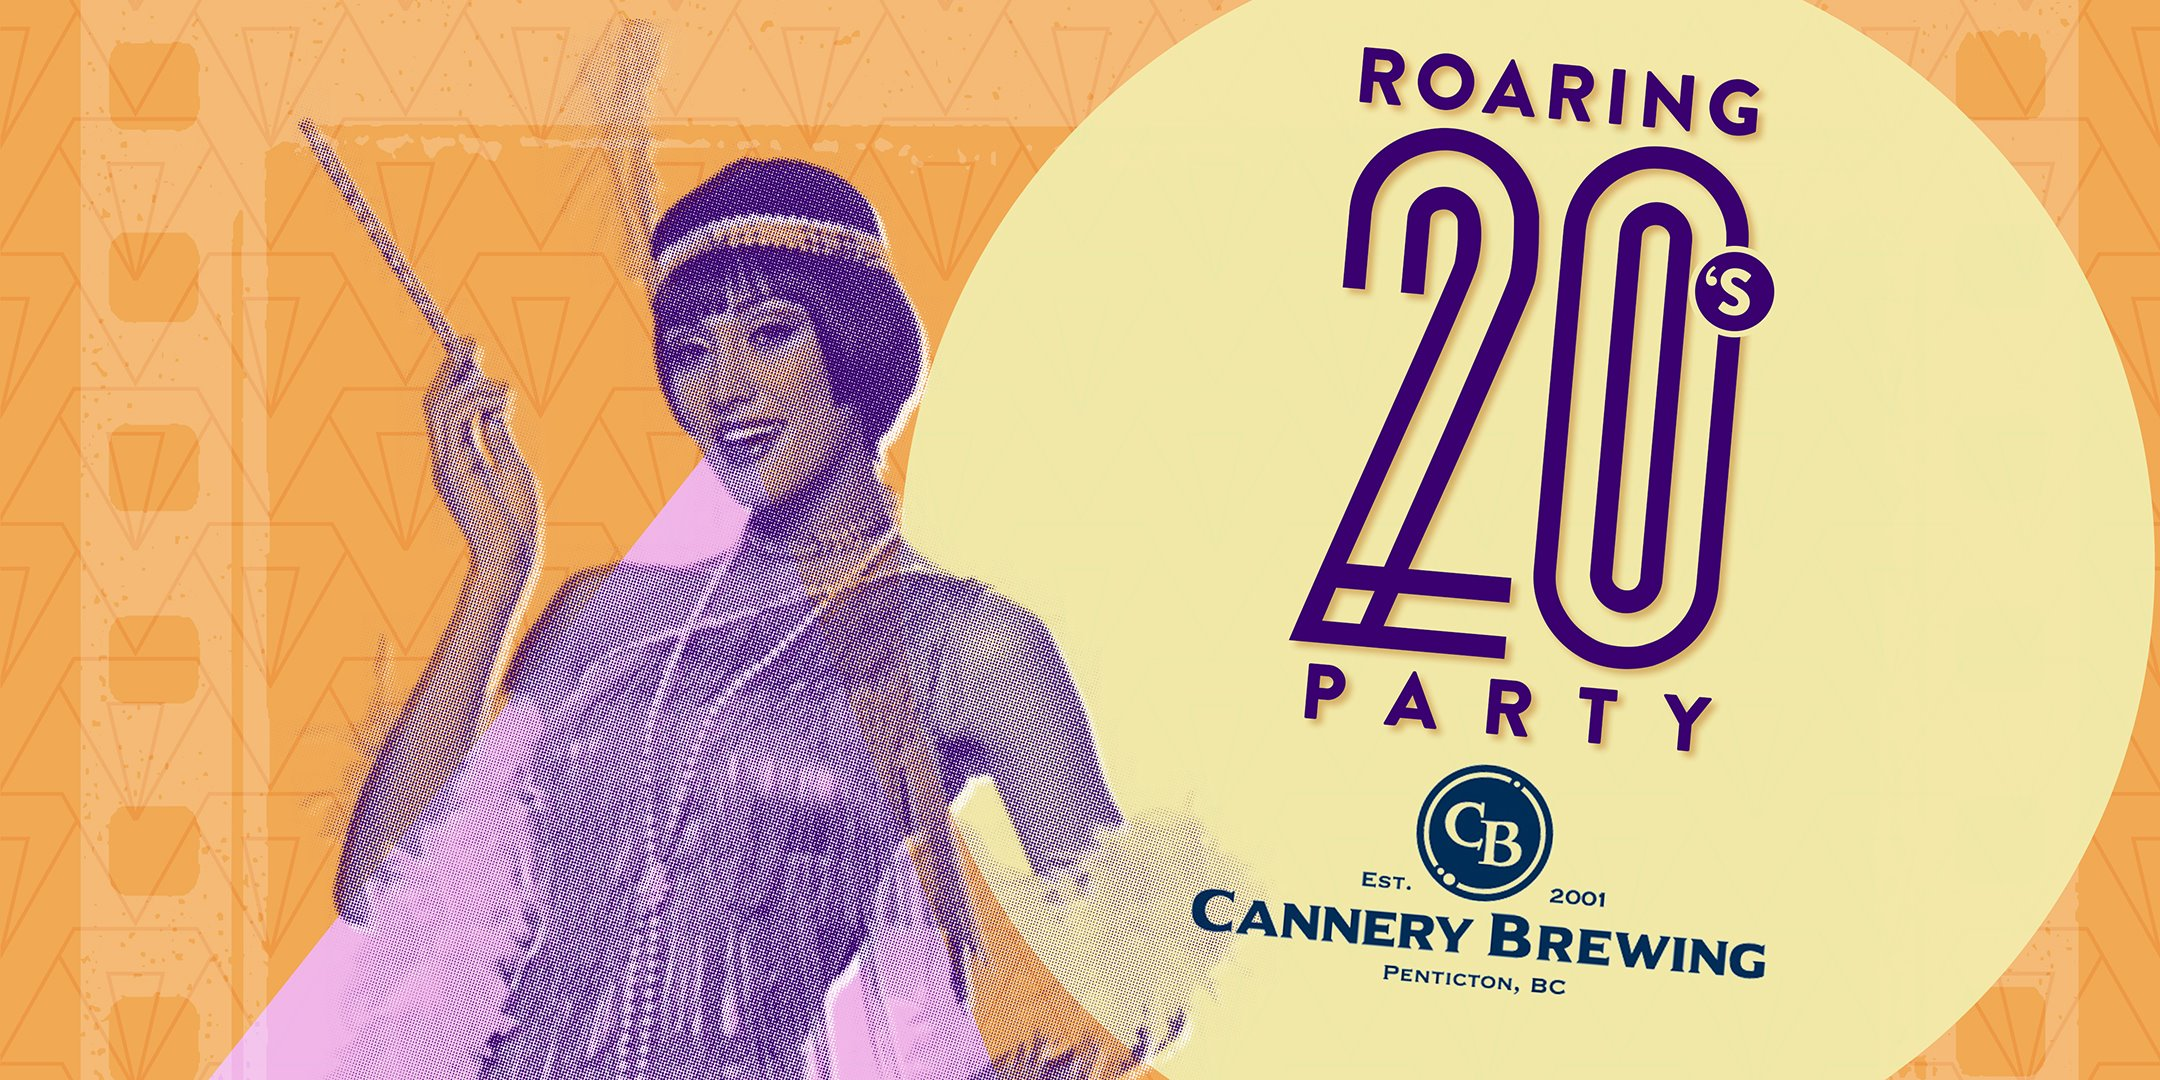 Roaring 20's Party @ The Cannery